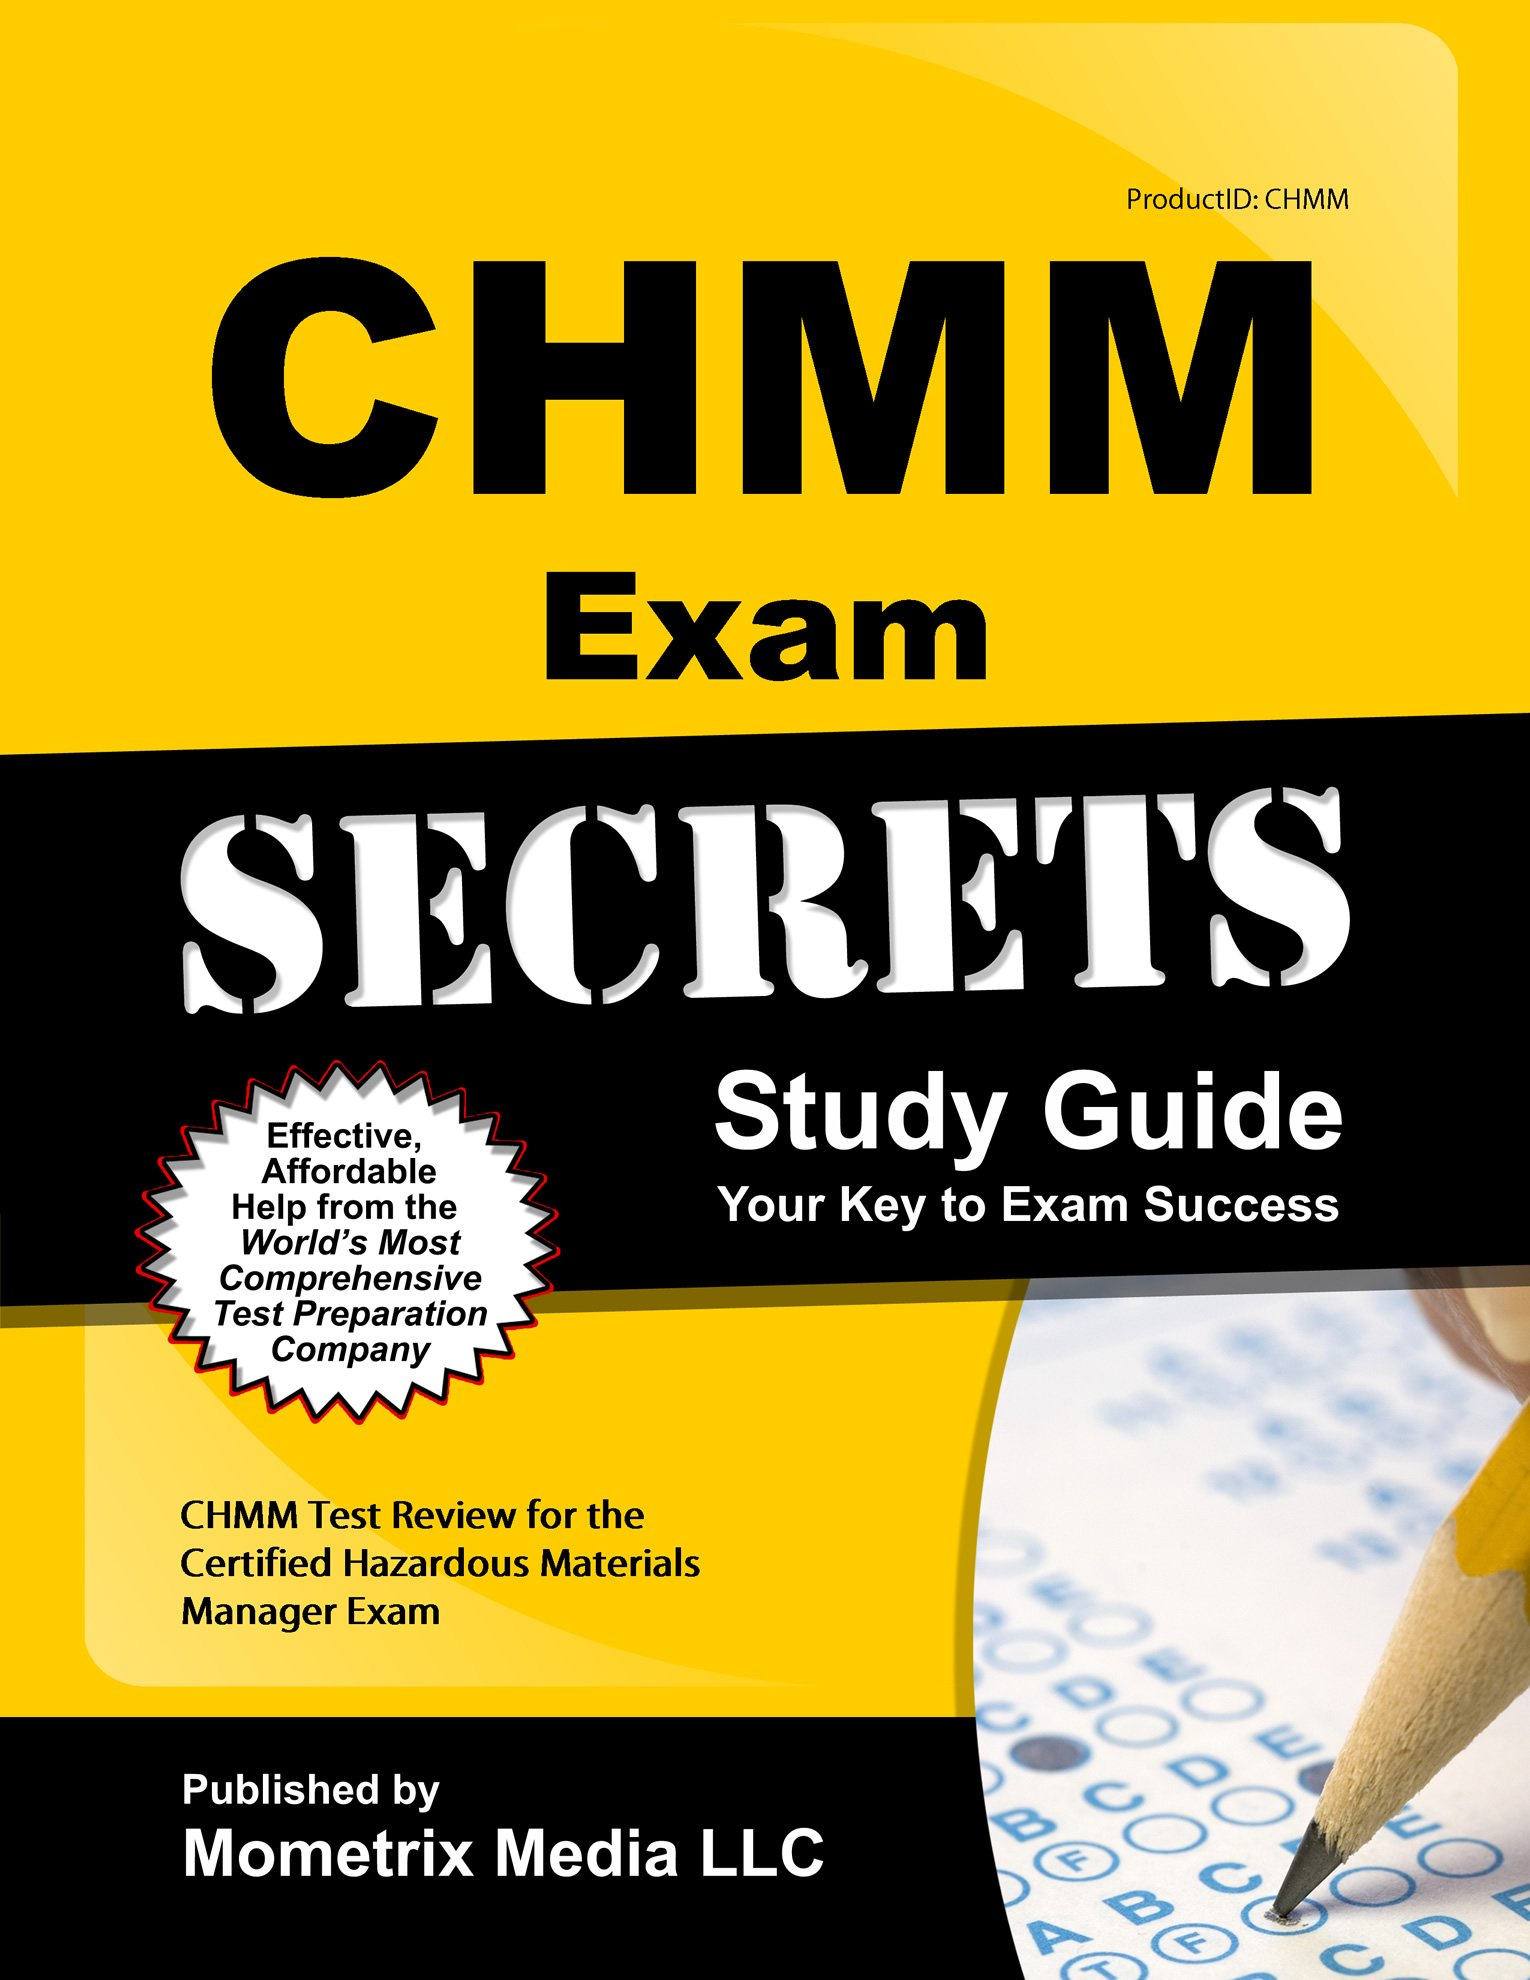 CHMM Exam Secrets Study Guide: CHMM Test Review for the Certified Hazardous  Materials Manager Exam: Amazon.com: Books